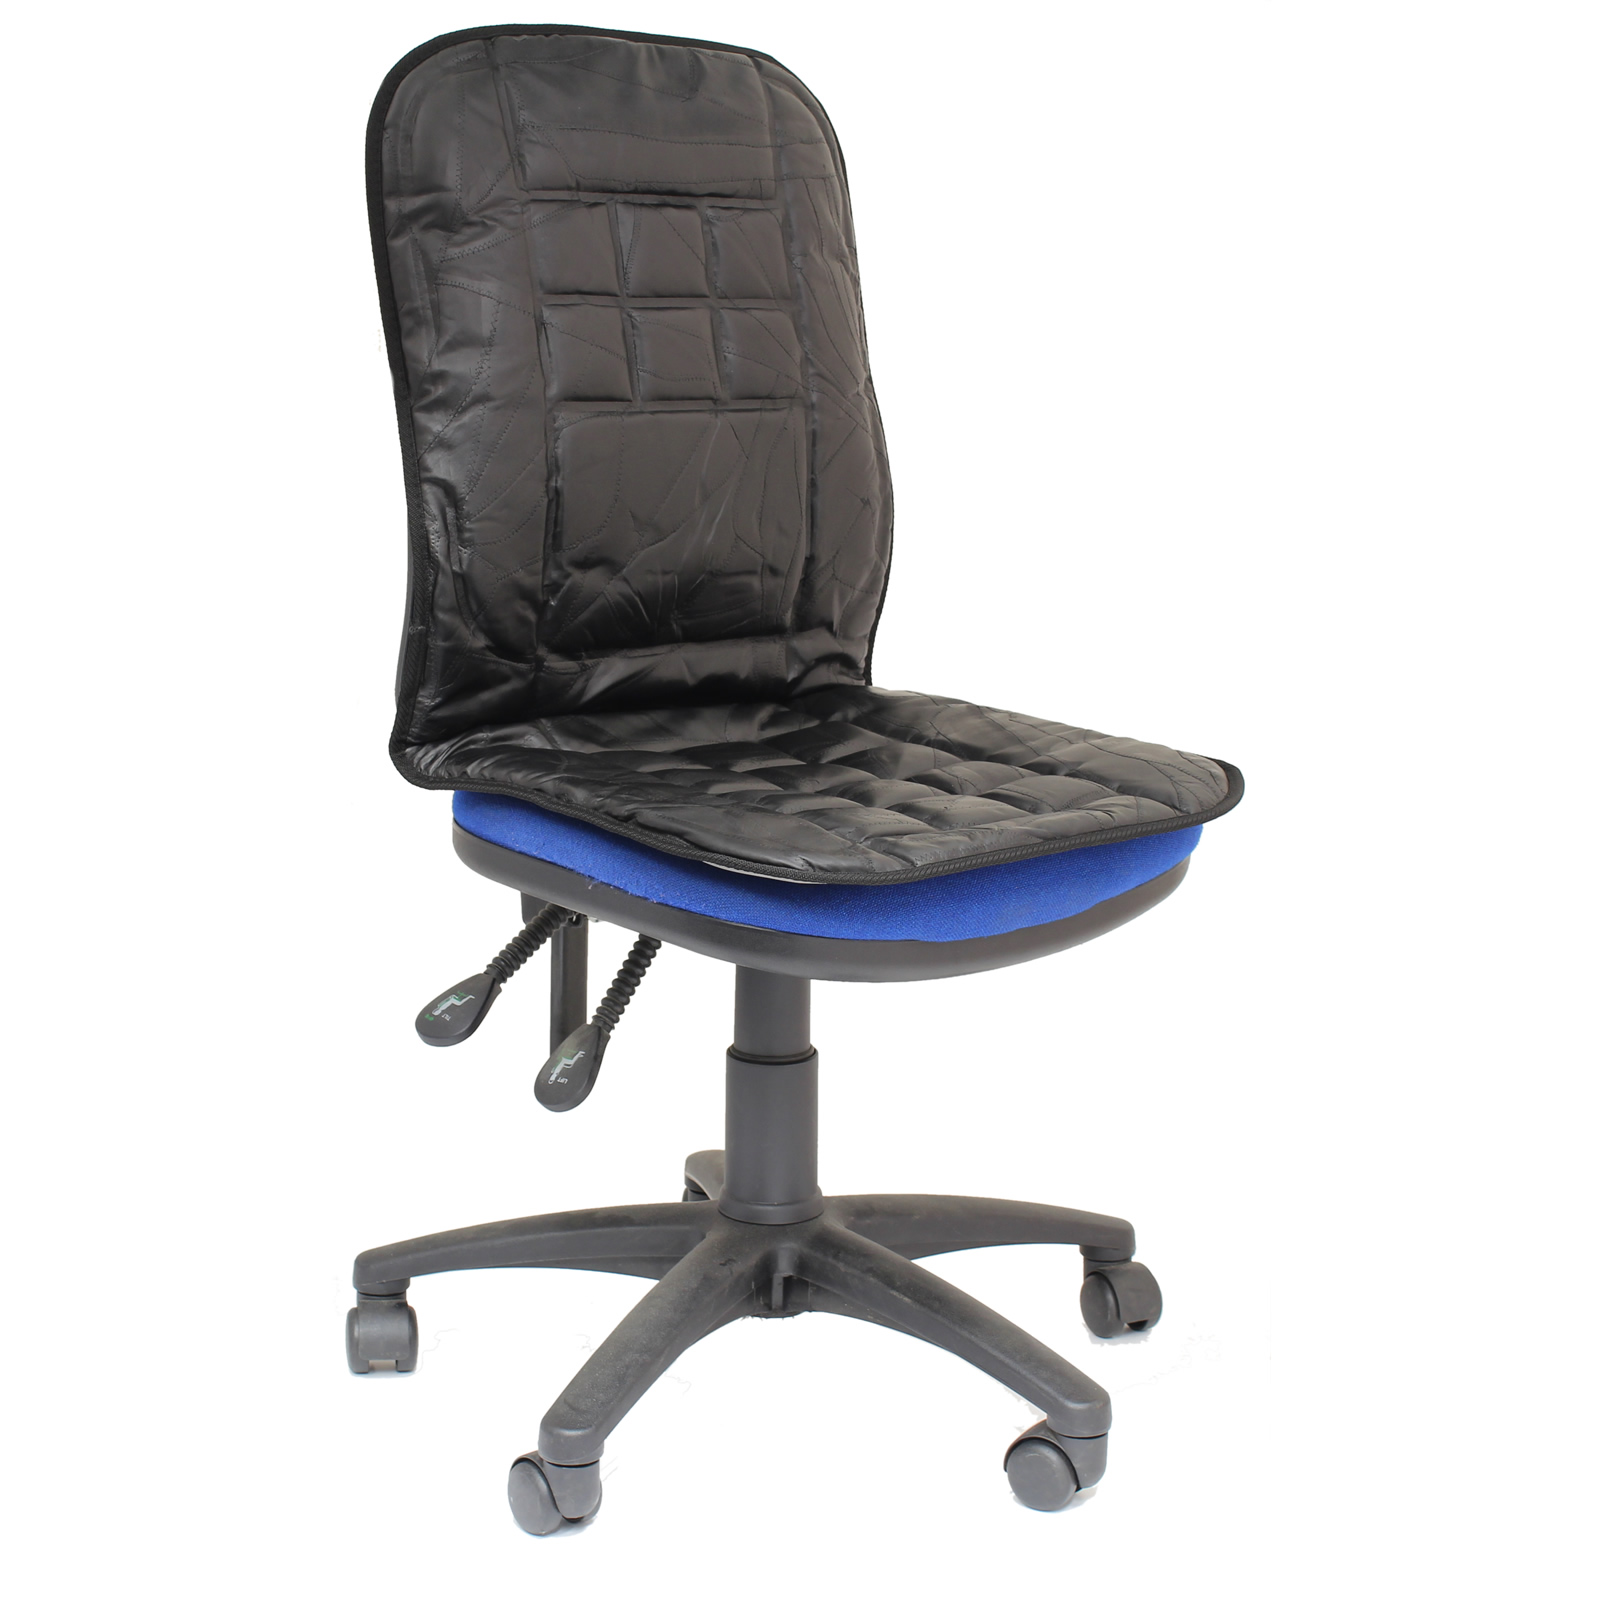 Best Desk Chair For Back Support Orthopaedic Leather Desk Office Chair Back Seat Cushion